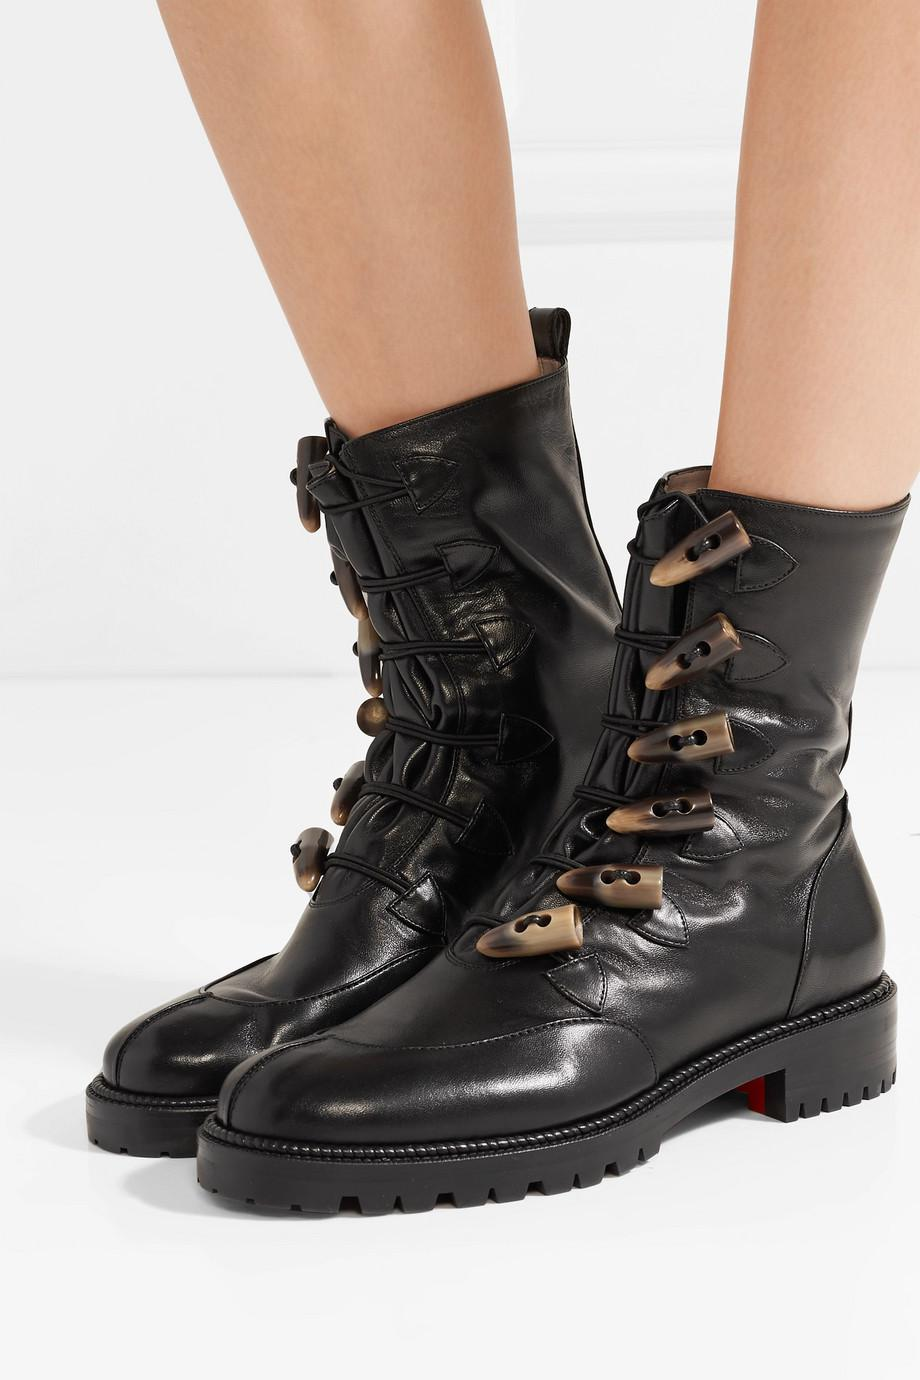 Popular And Cheap Kloster Shearling-lined Leather Boots - Black Christian Louboutin Good Service HahLF0